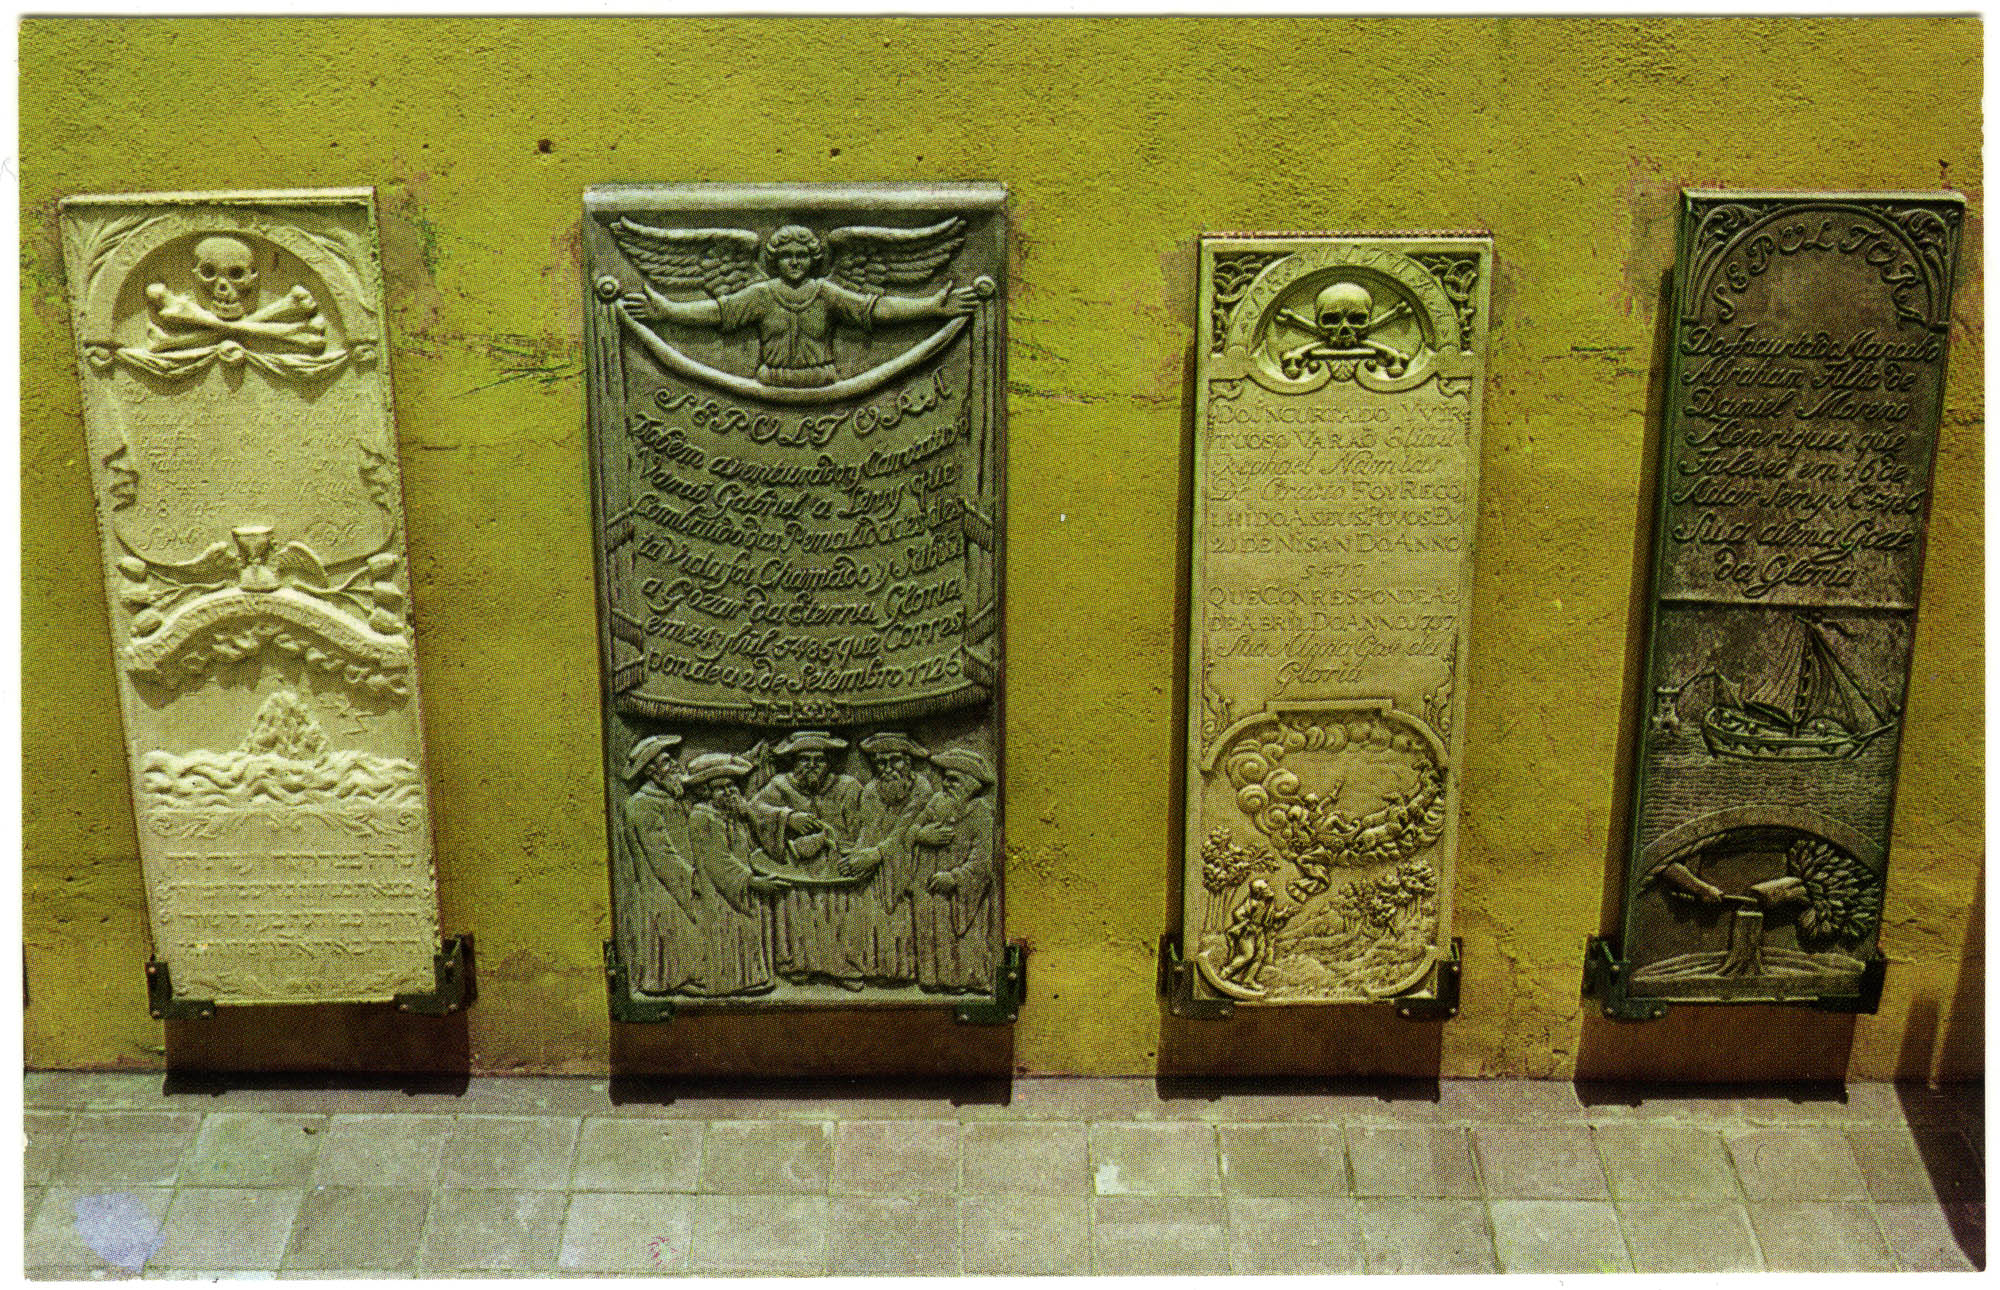 Partial view of the patio of the Jewish Cultural Historical Museum, showing replicas of four of the beautifully carved tombstones in the historic Bet Hayim cemetery, consecrated in 1659, the oldest in the Western Hemisphere.